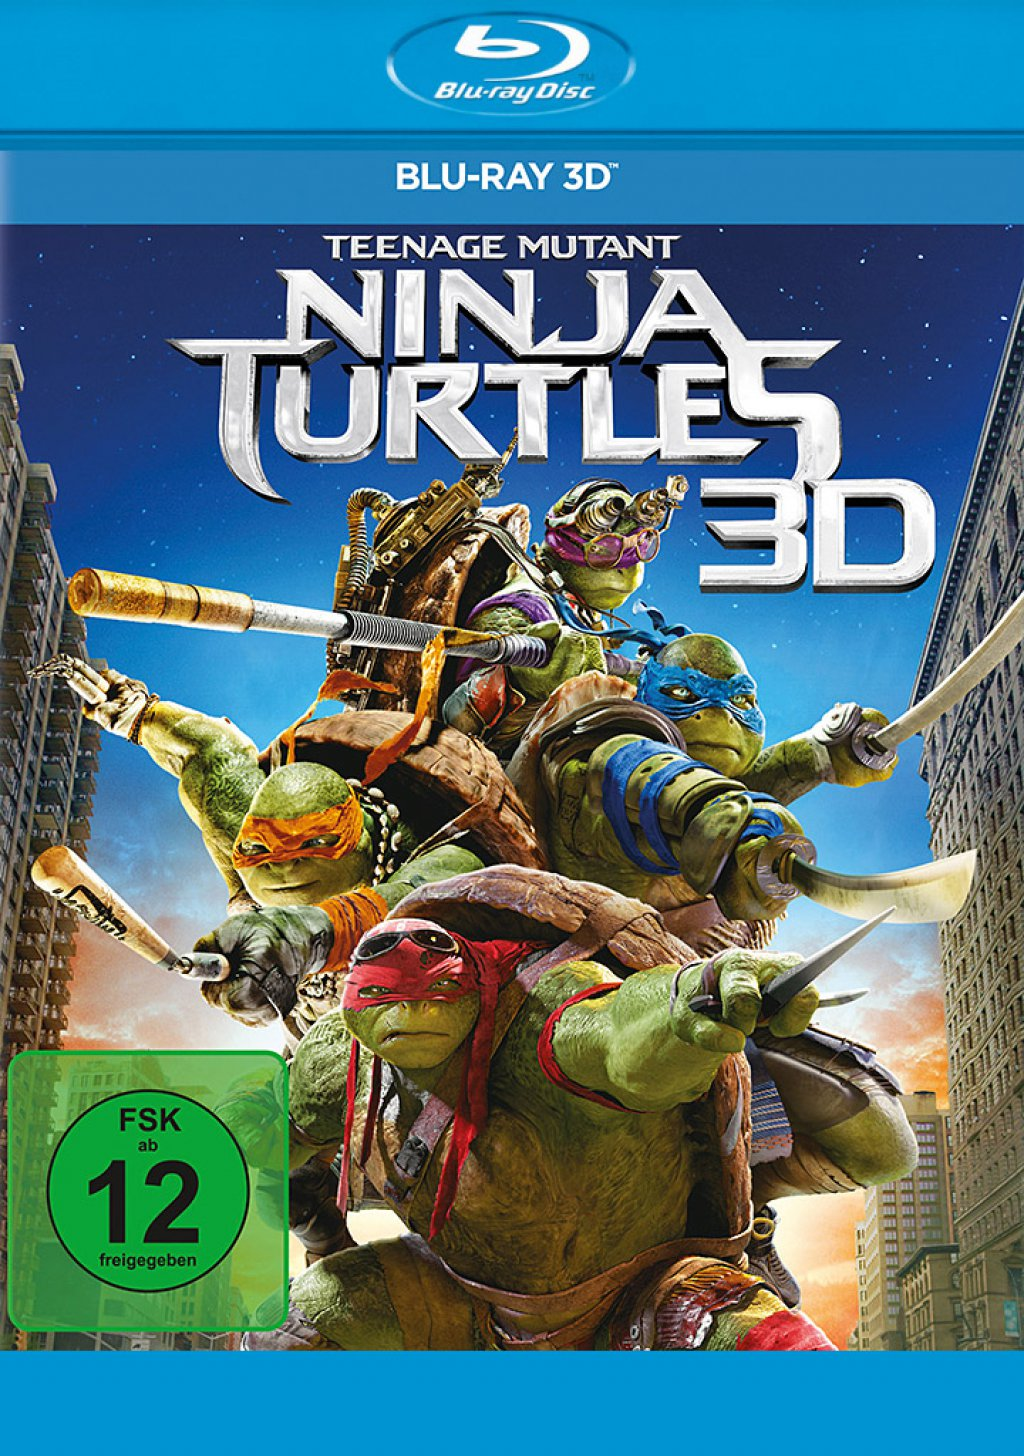 Teenage Mutant Ninja Turtles - Blu-ray 3D (Blu-ray)